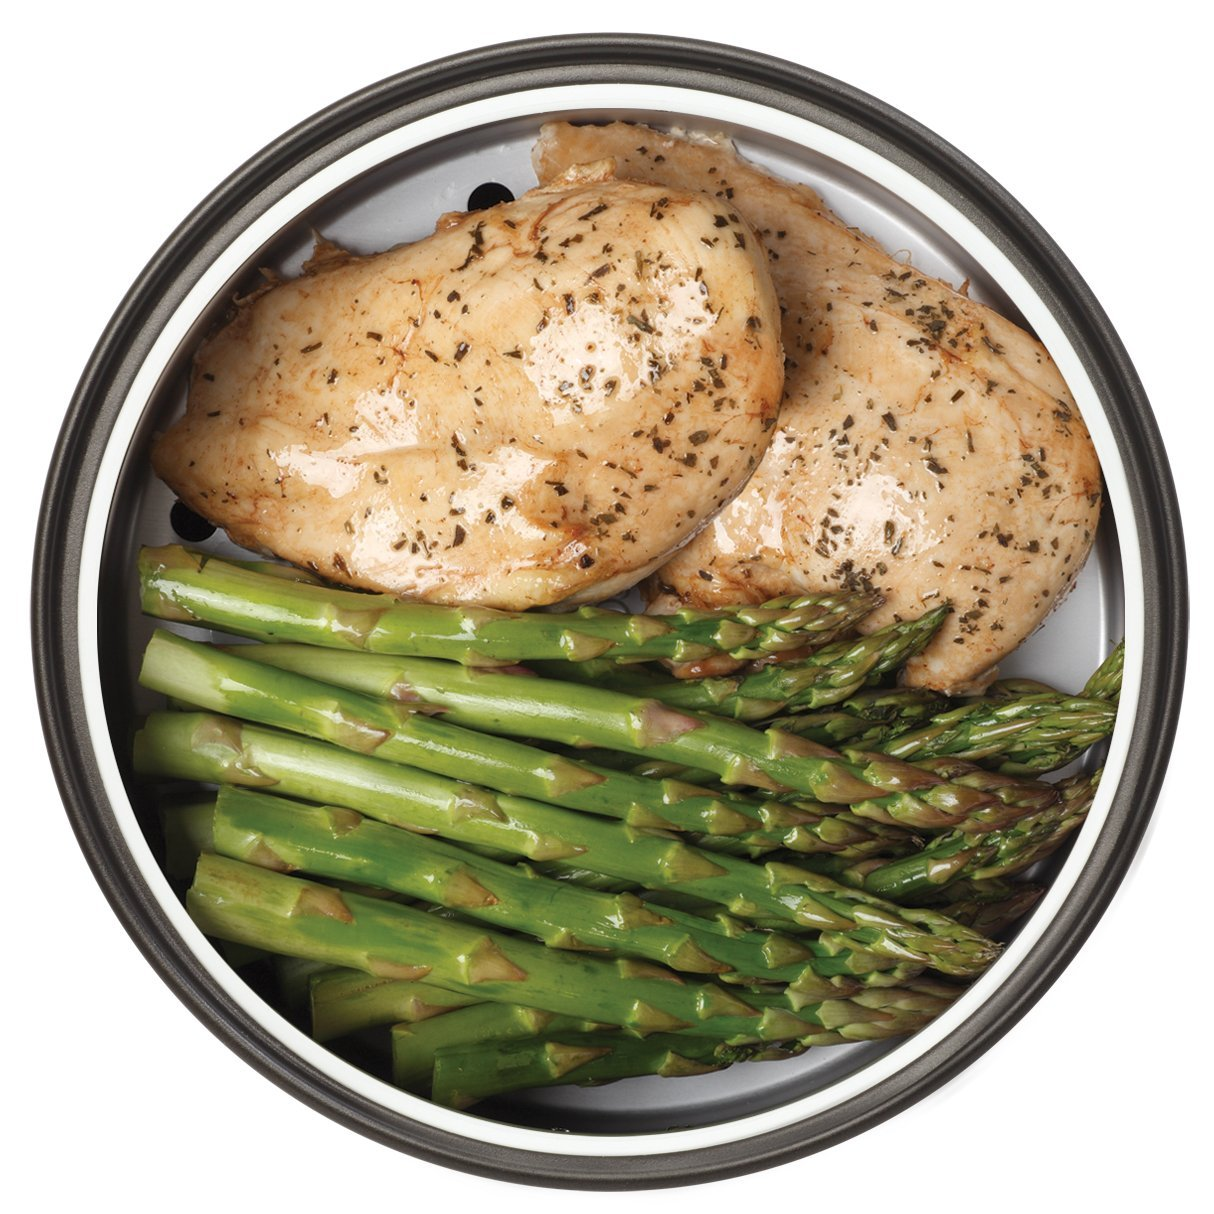 Steamed chicken and asparagus in aroma digital rice cooker food published september 17 2014 at 1214 1214 in forumfinder Gallery